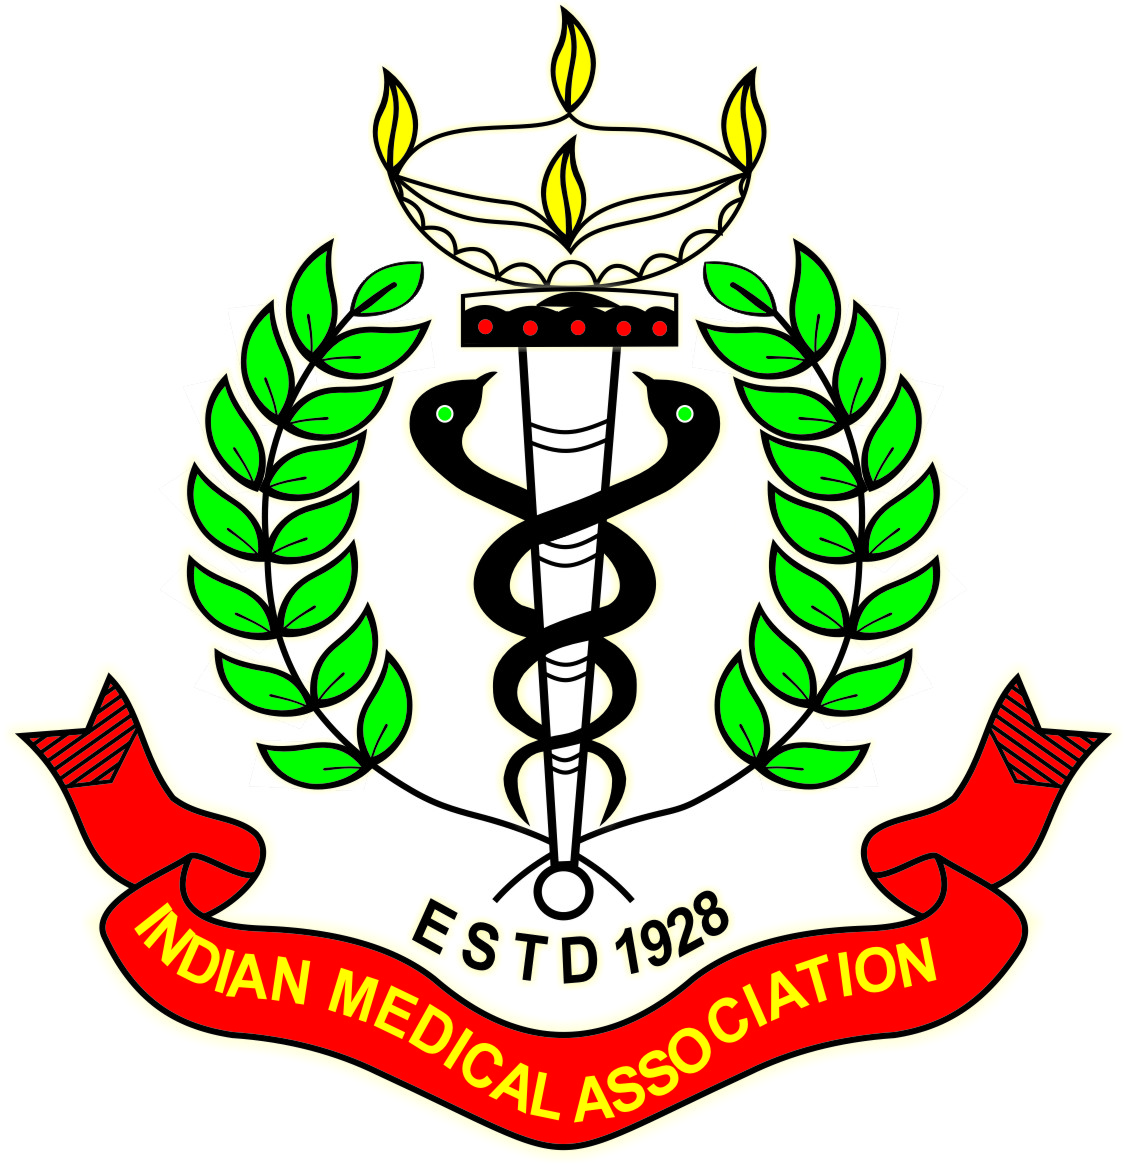 Doctors symbol free download best doctors symbol on clipartmag 1127x1165 indian medical association buycottarizona